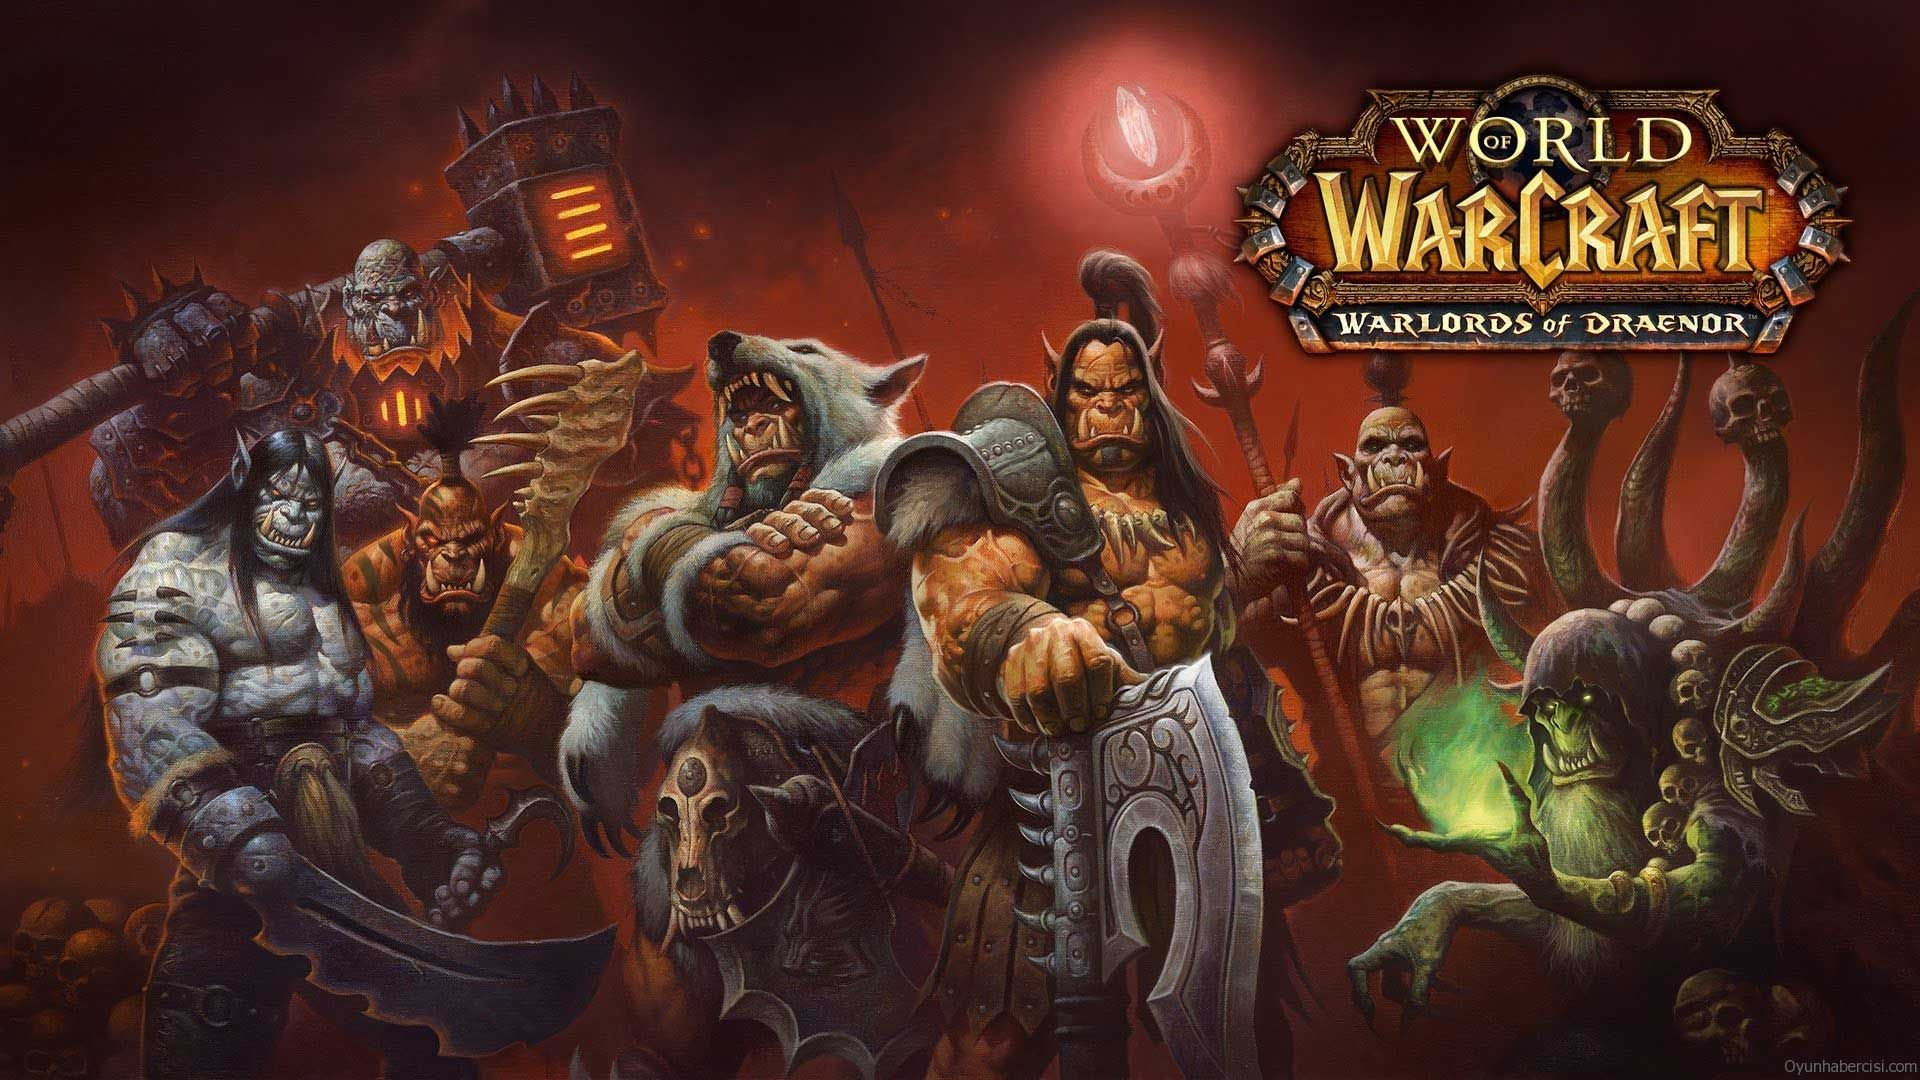 World Of Warcraft: Warlords of Draenor (2014)